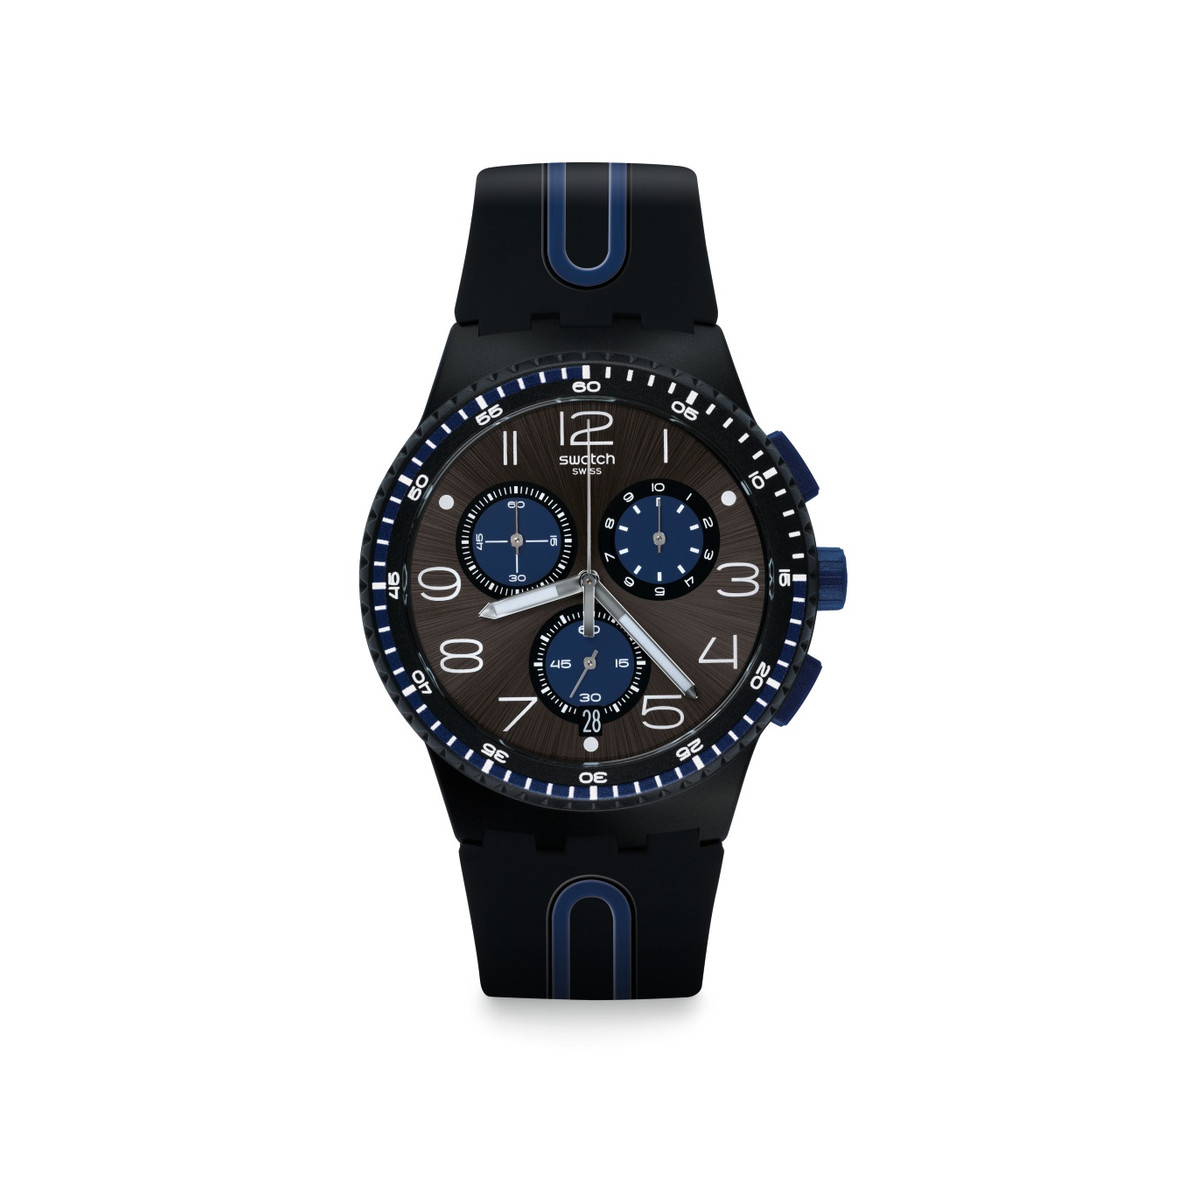 Montre Swatch homme chronographe homme